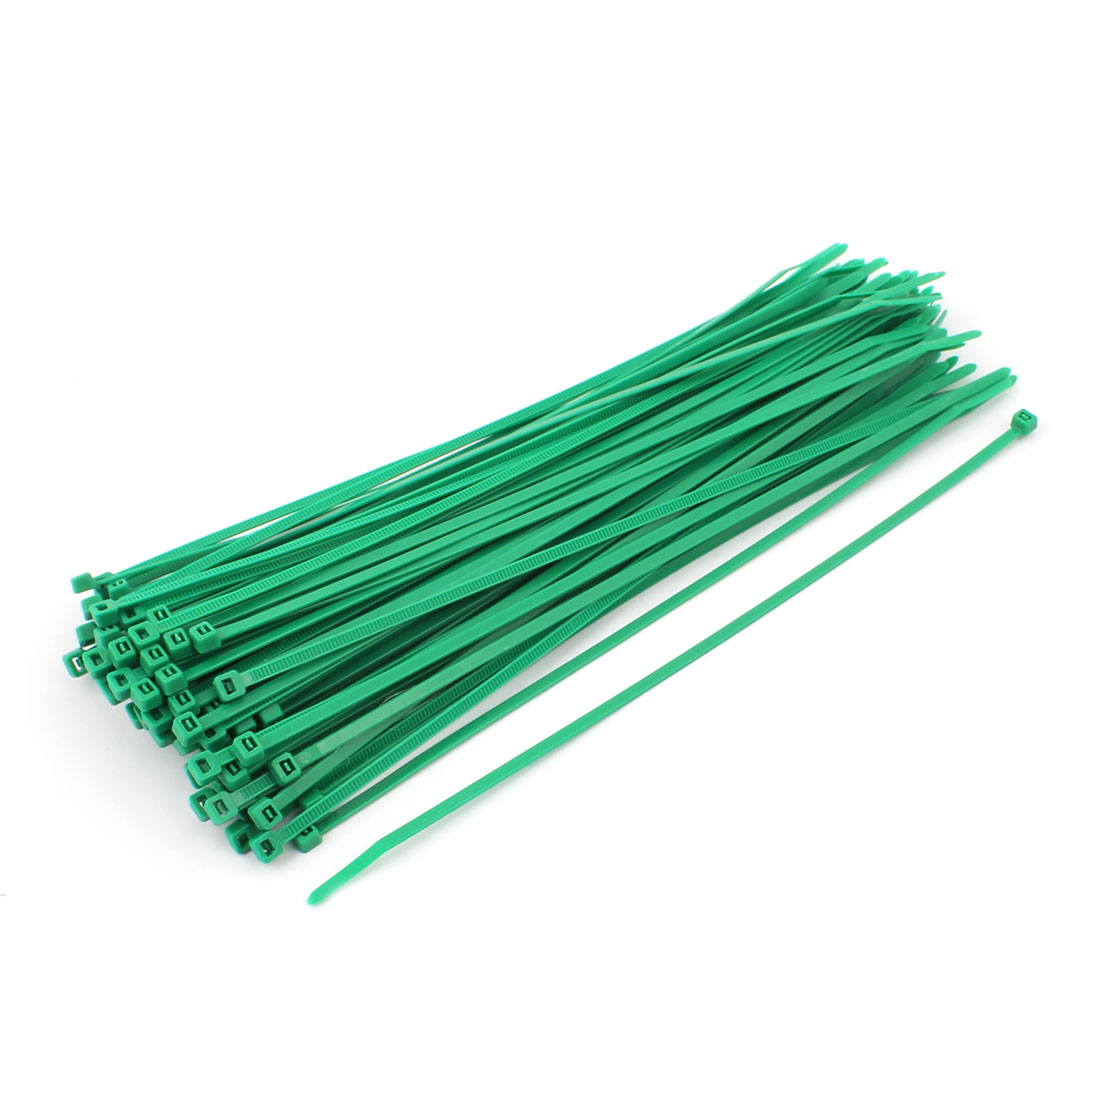 4mmx250mm Self Locking Nylon Cable Ties Industrial Wire Zip Ties 100pcs